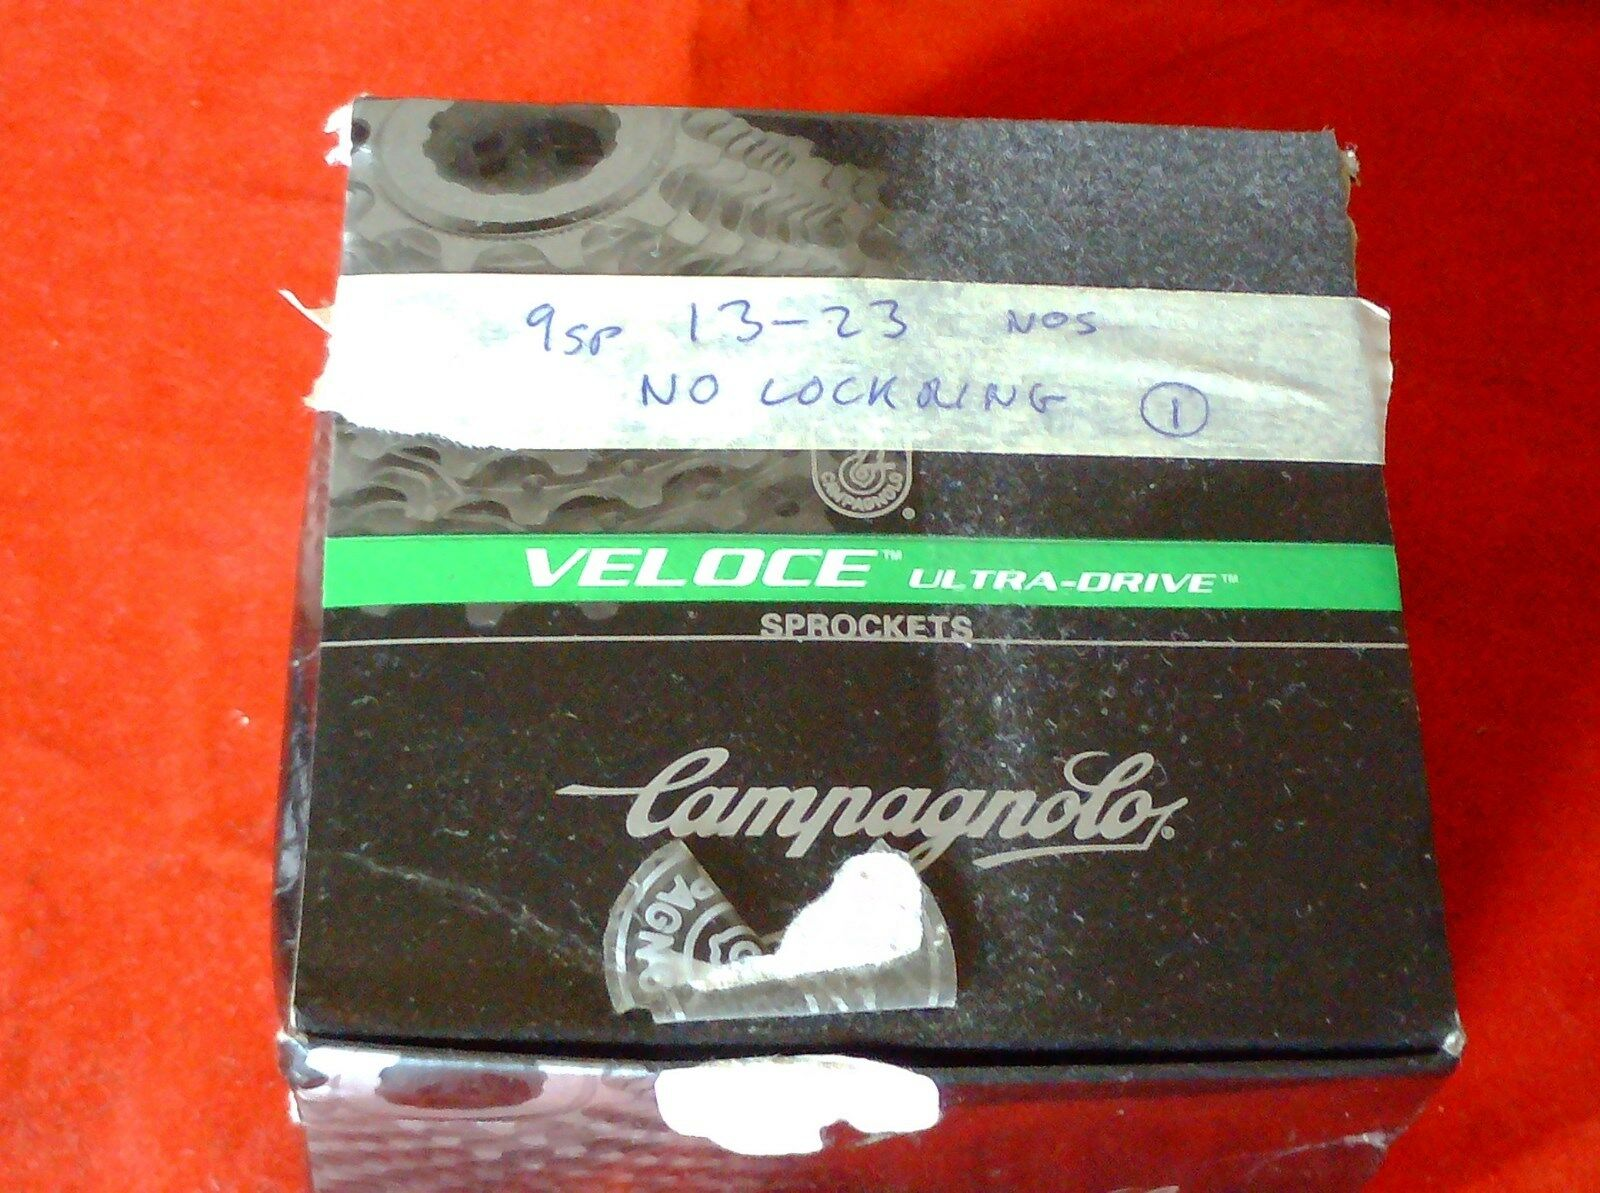 CAMPAGNOLO VELOCE UD 9 SPEED 13-23 TOOTH CASSETTE    Guter Markt